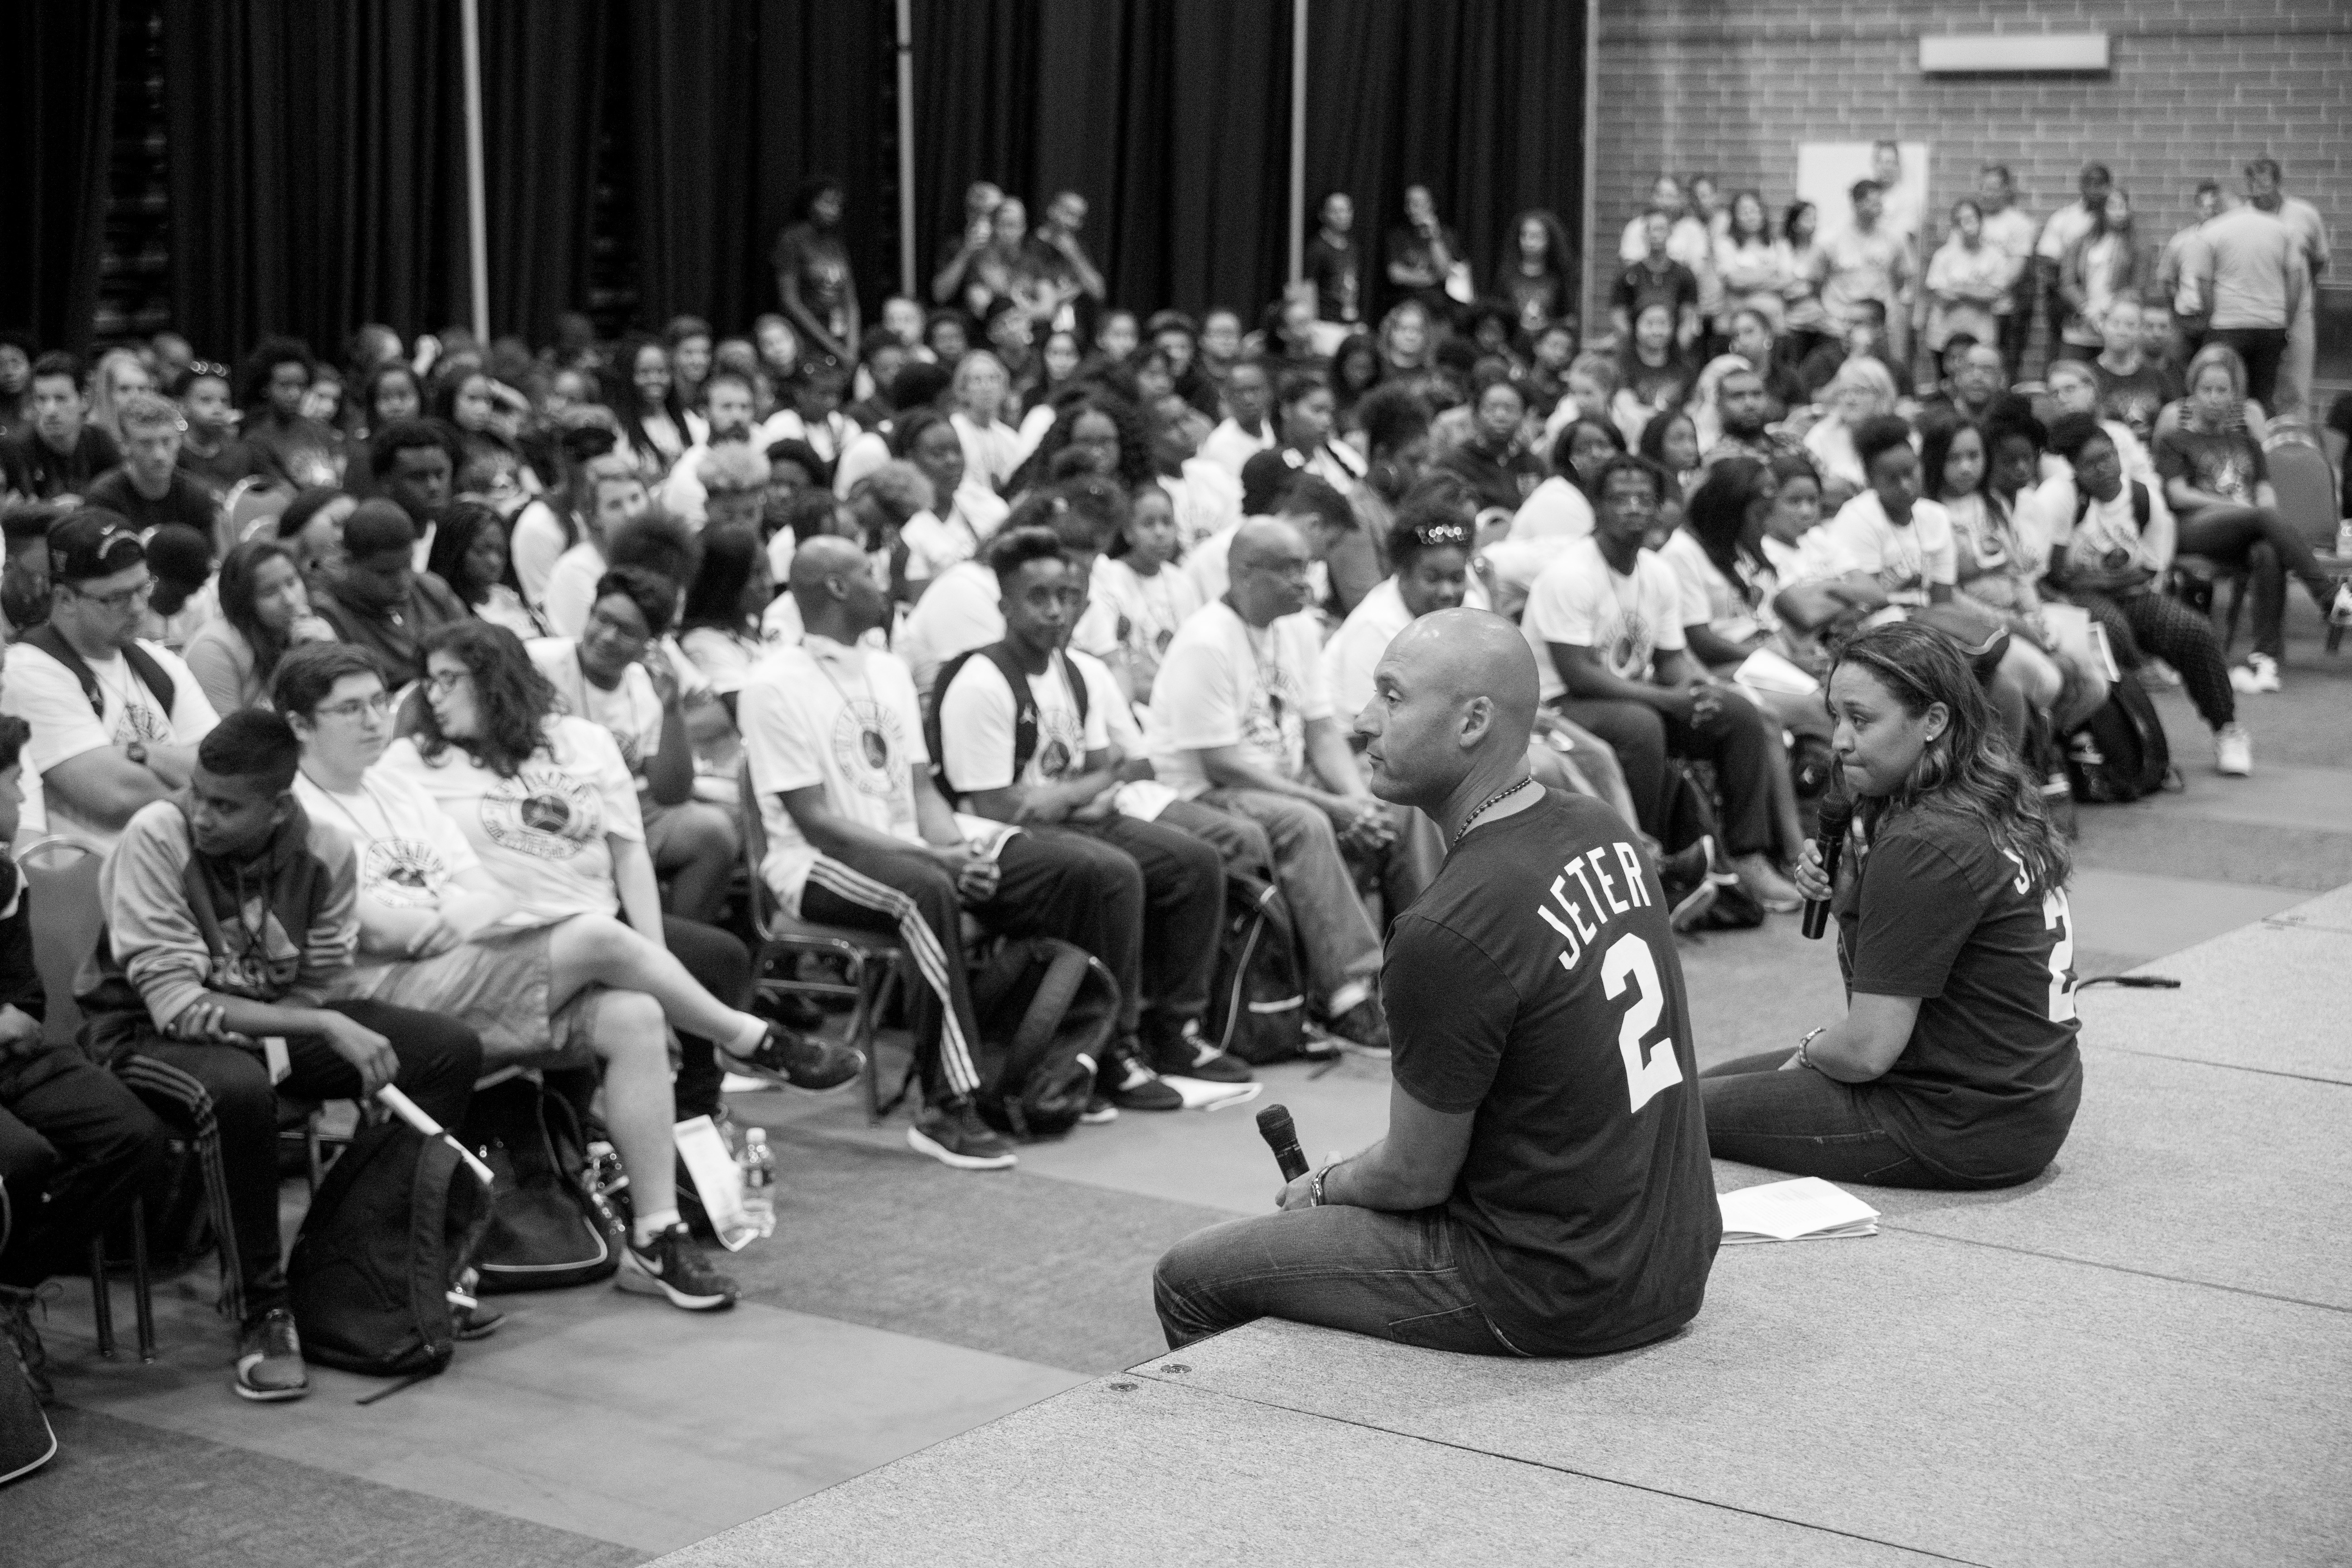 """8/9/16 4:27:59 PM -- The Players' Tribune: Jeter's Leaders. Photography of the Derek Jeter Turn Two foundation """"Jeter's Leaders"""" Summit at the UIC forum in Chicago, IL Todd Rosenberg/The Players' Tribune"""